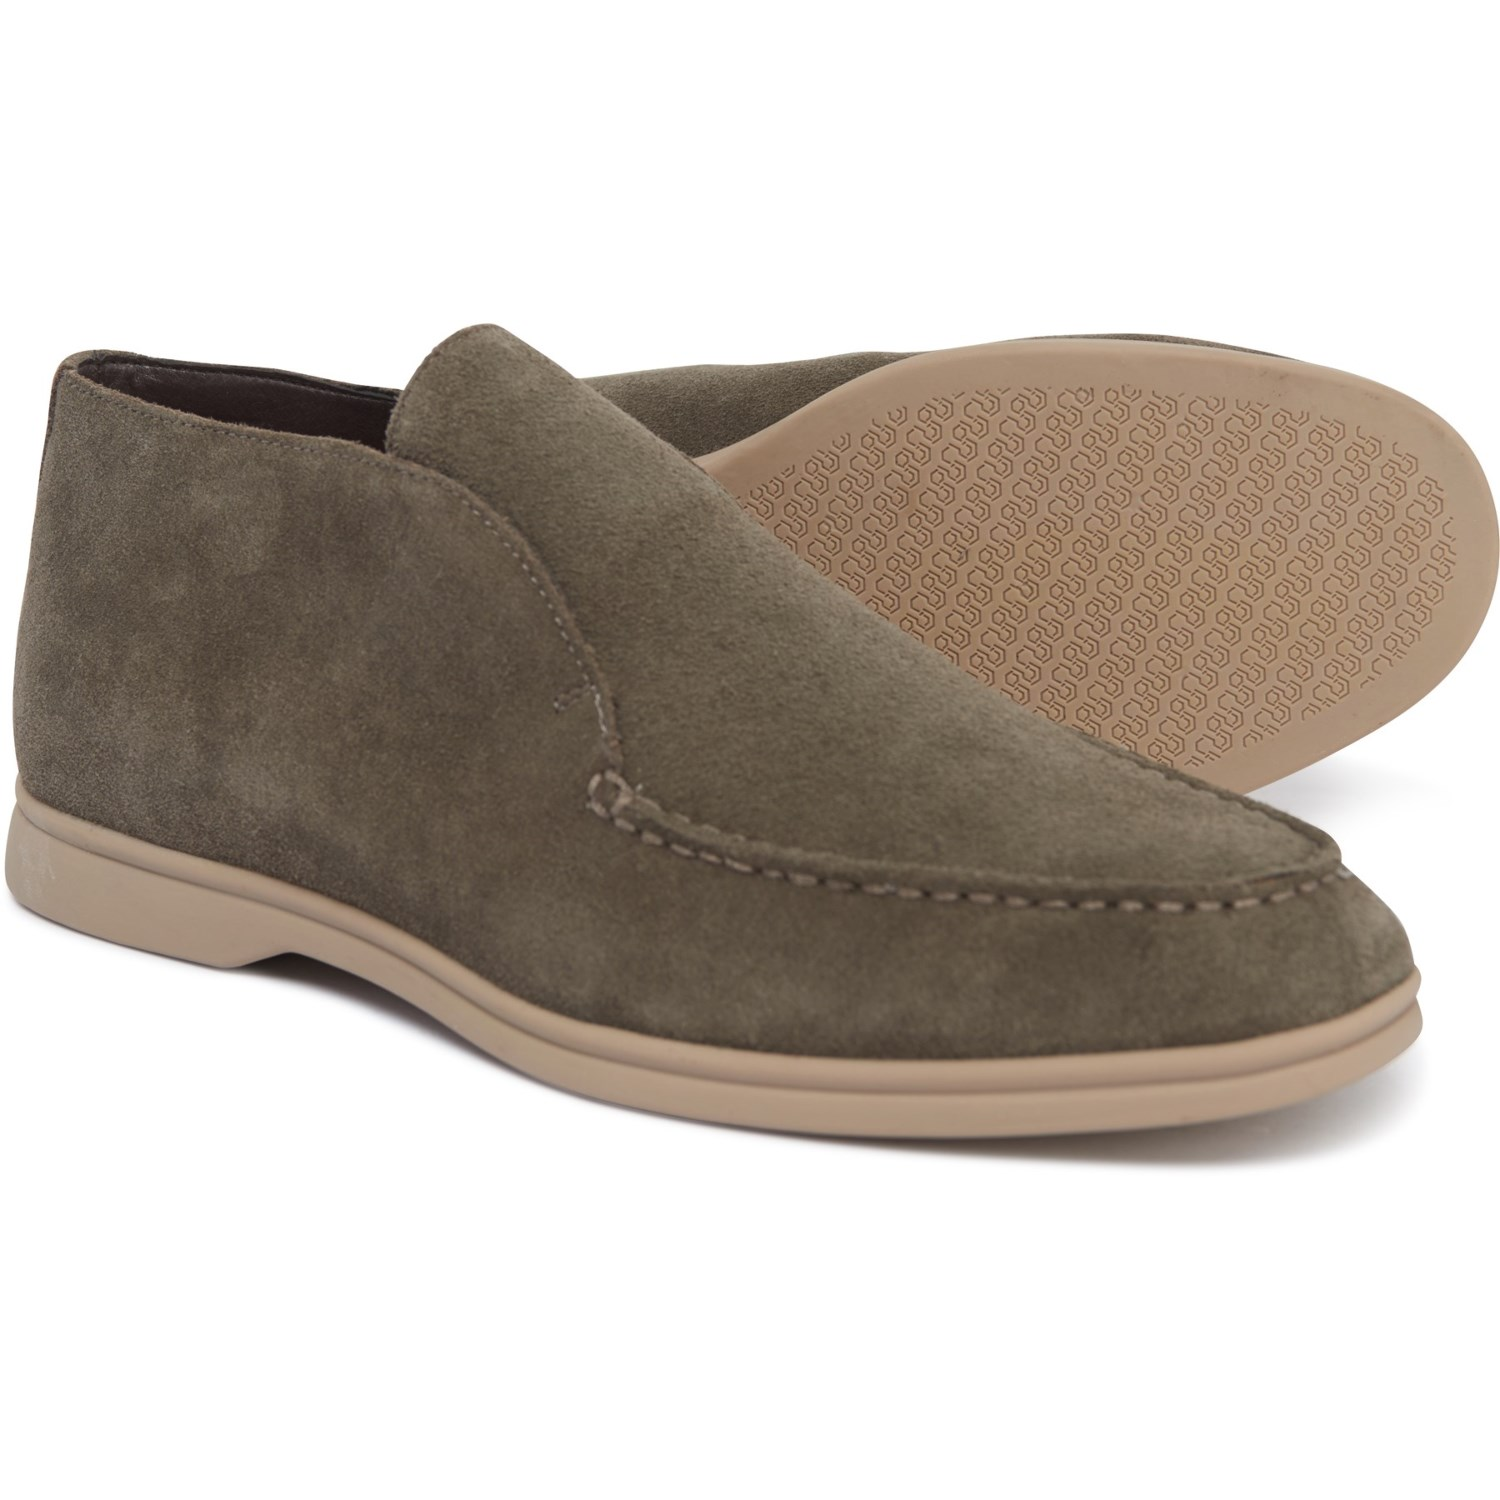 28adbeb8044 Steve Madden Lost Loafers (For Men) - Save 63%